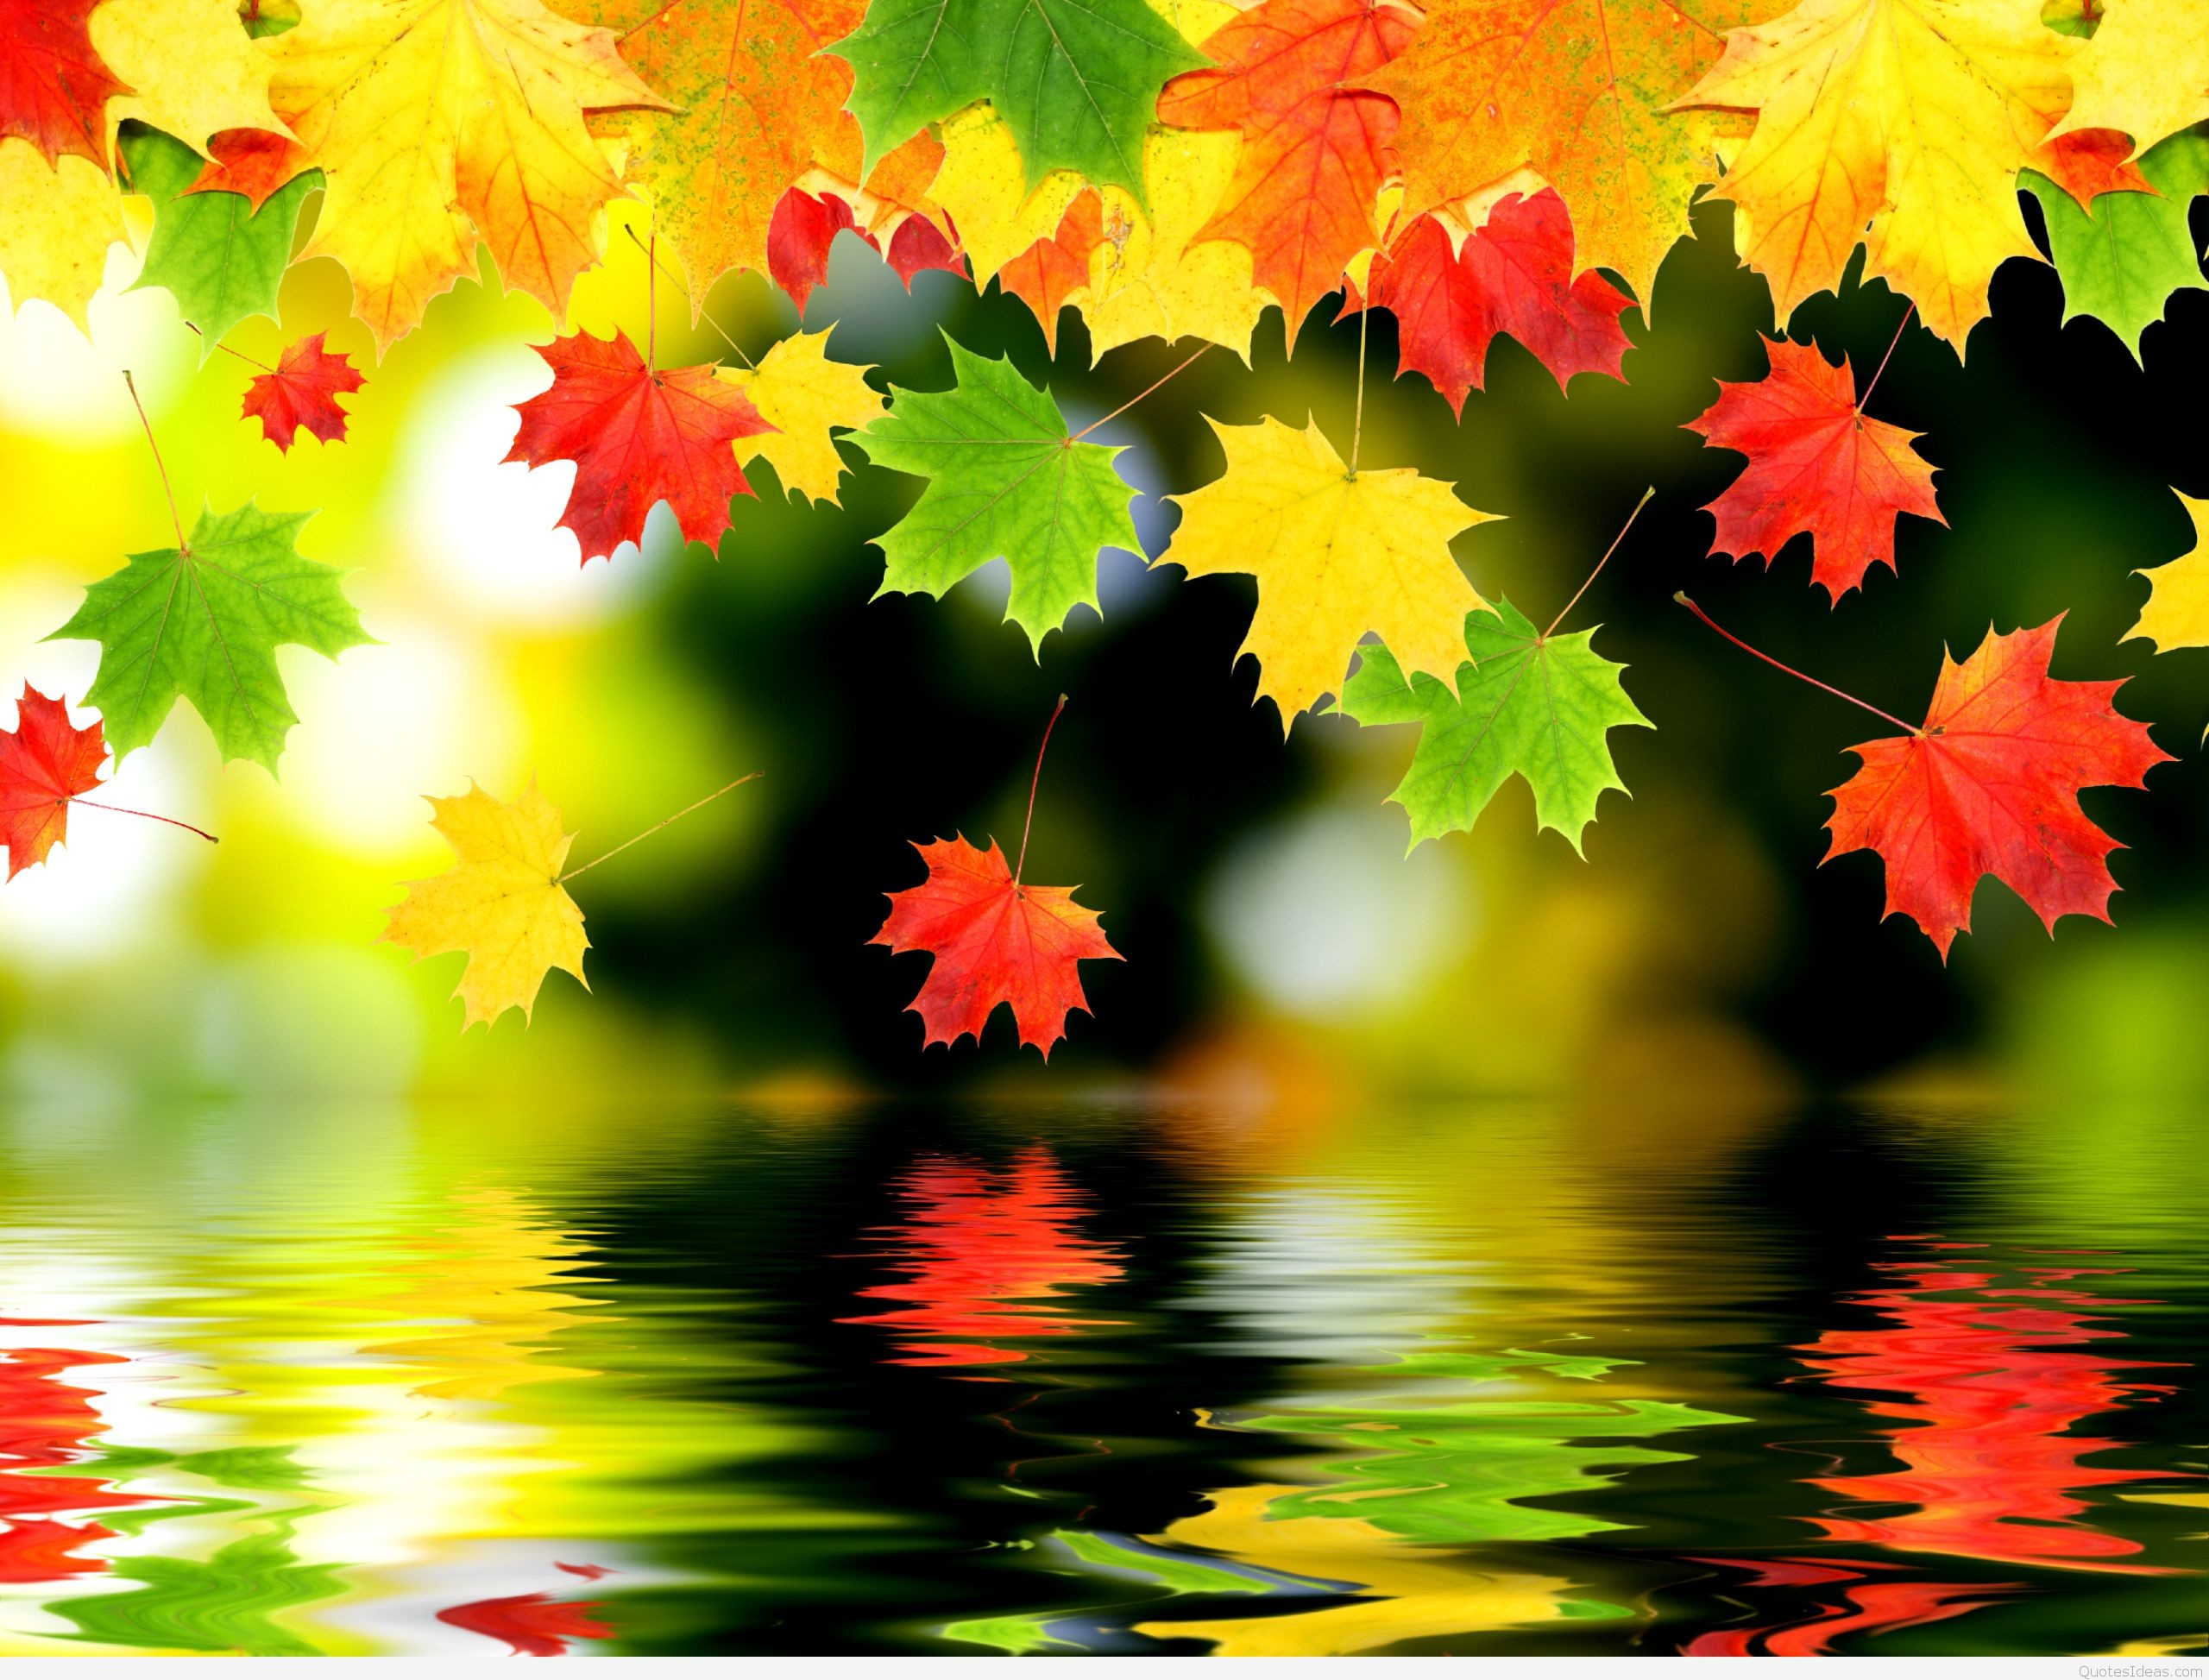 2560x1947 ... backgrounds wallpaper tianyihengfeng free download; autumn wallpaper on  wallpaperget com ...